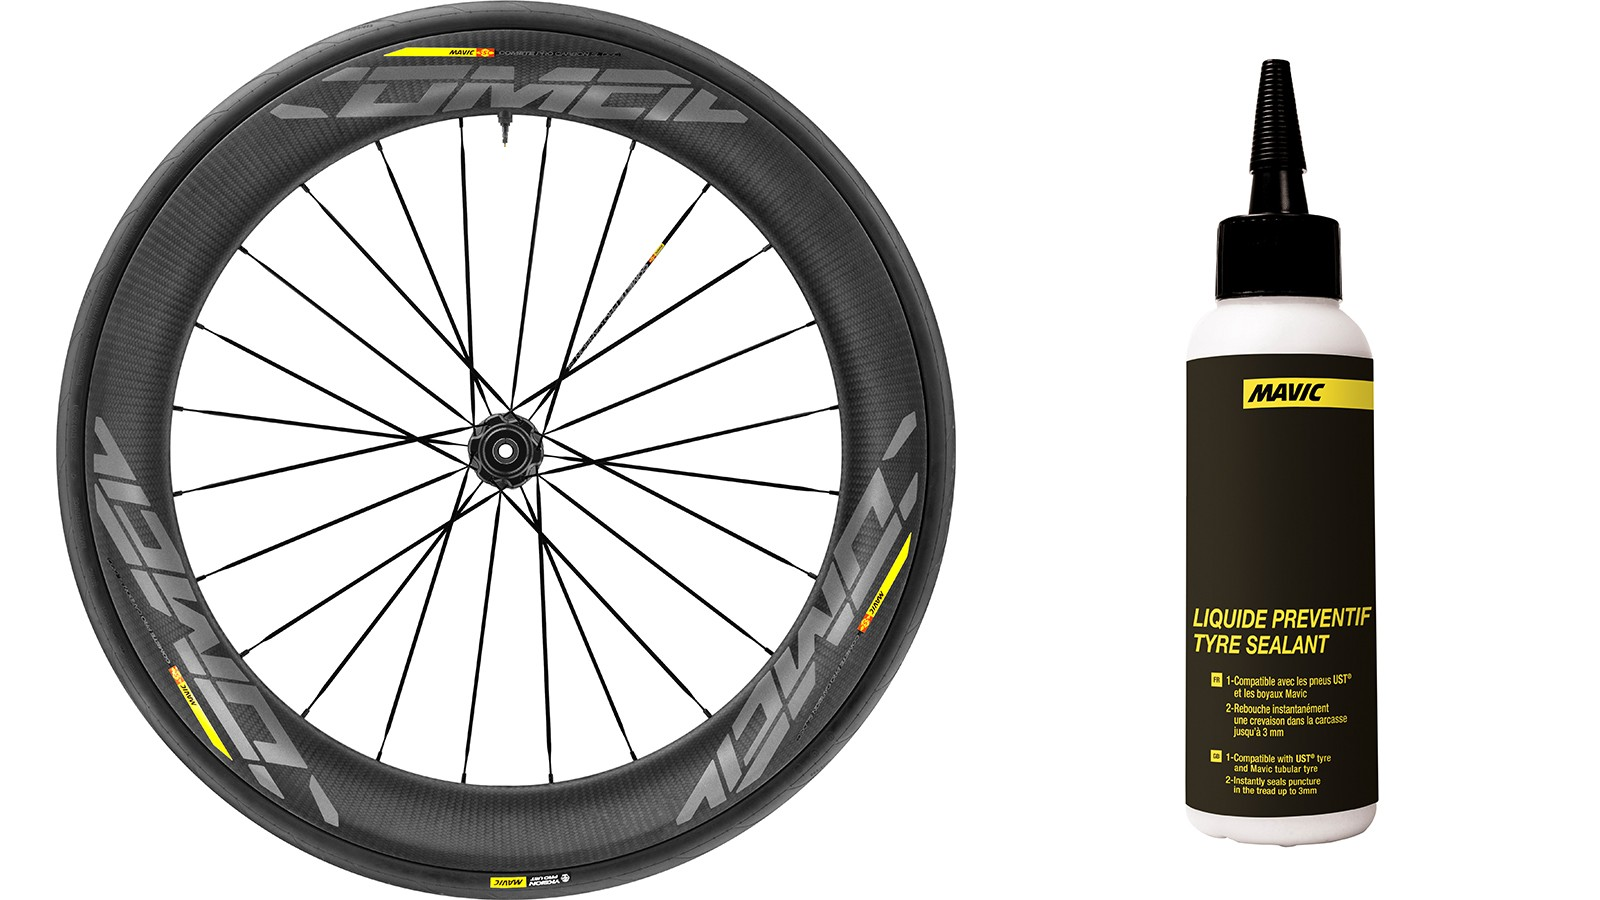 Mavic claims its Road UST system is 15% faster in terms of rolling resistance than a comparable clincher/tube set-up